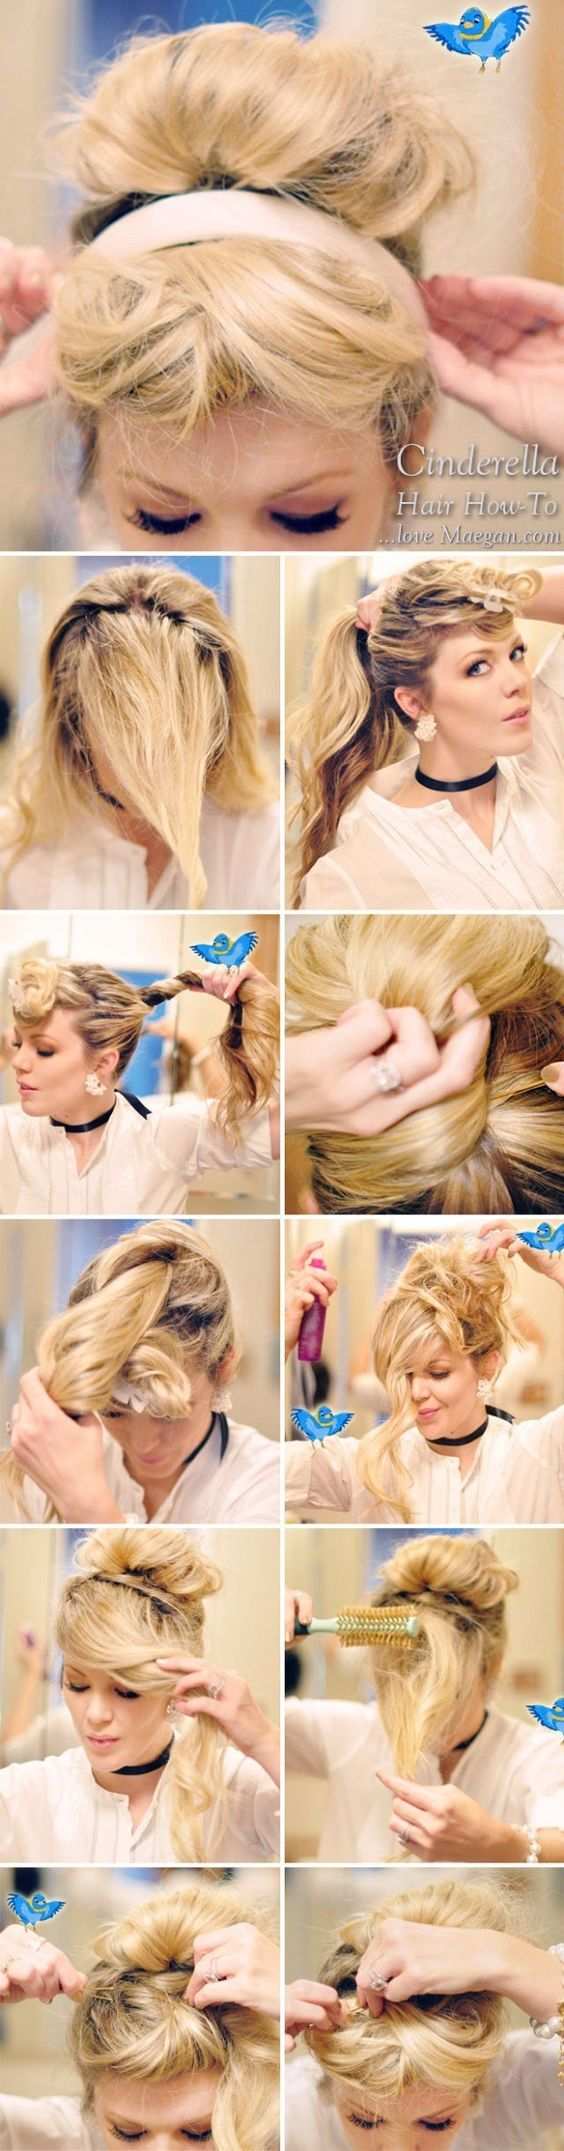 Cinderella's chic updo | Community Post: 7 Easy Hair Tutorials Even Disney Princesses Would Envy